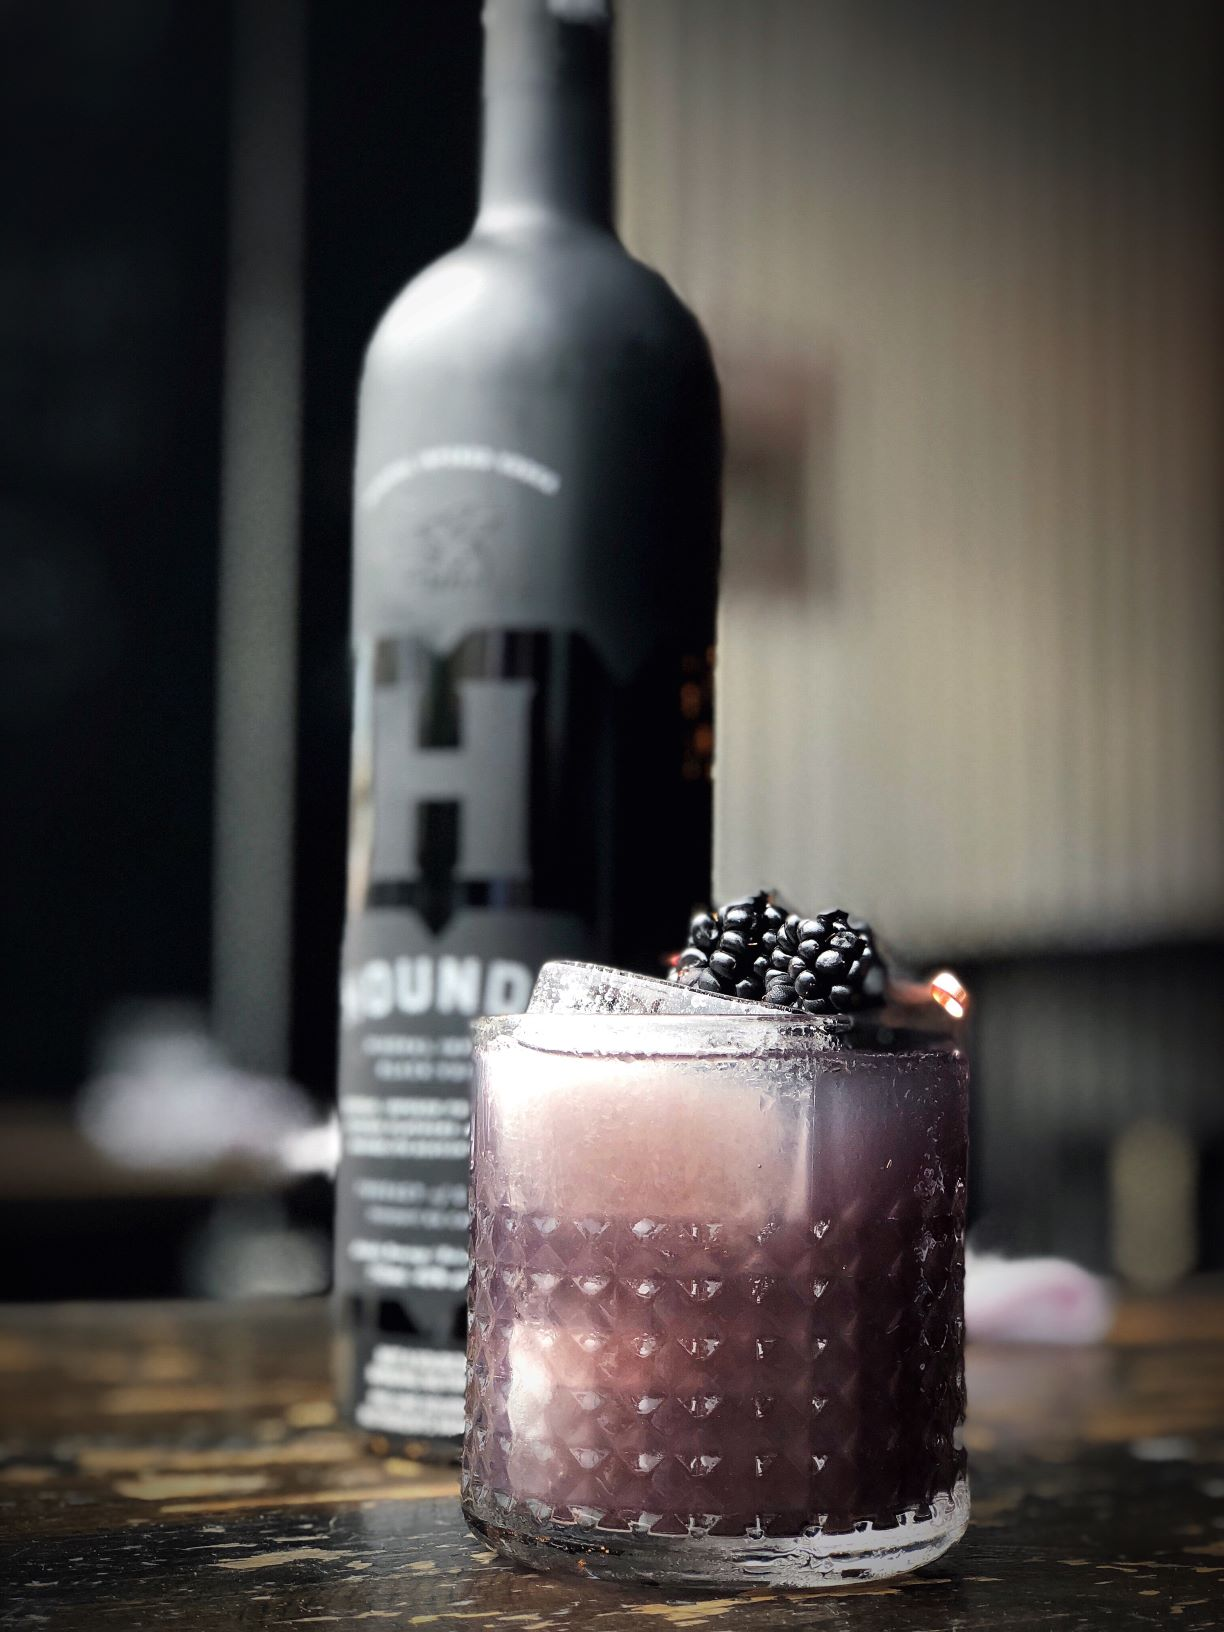 Hounds black vodka